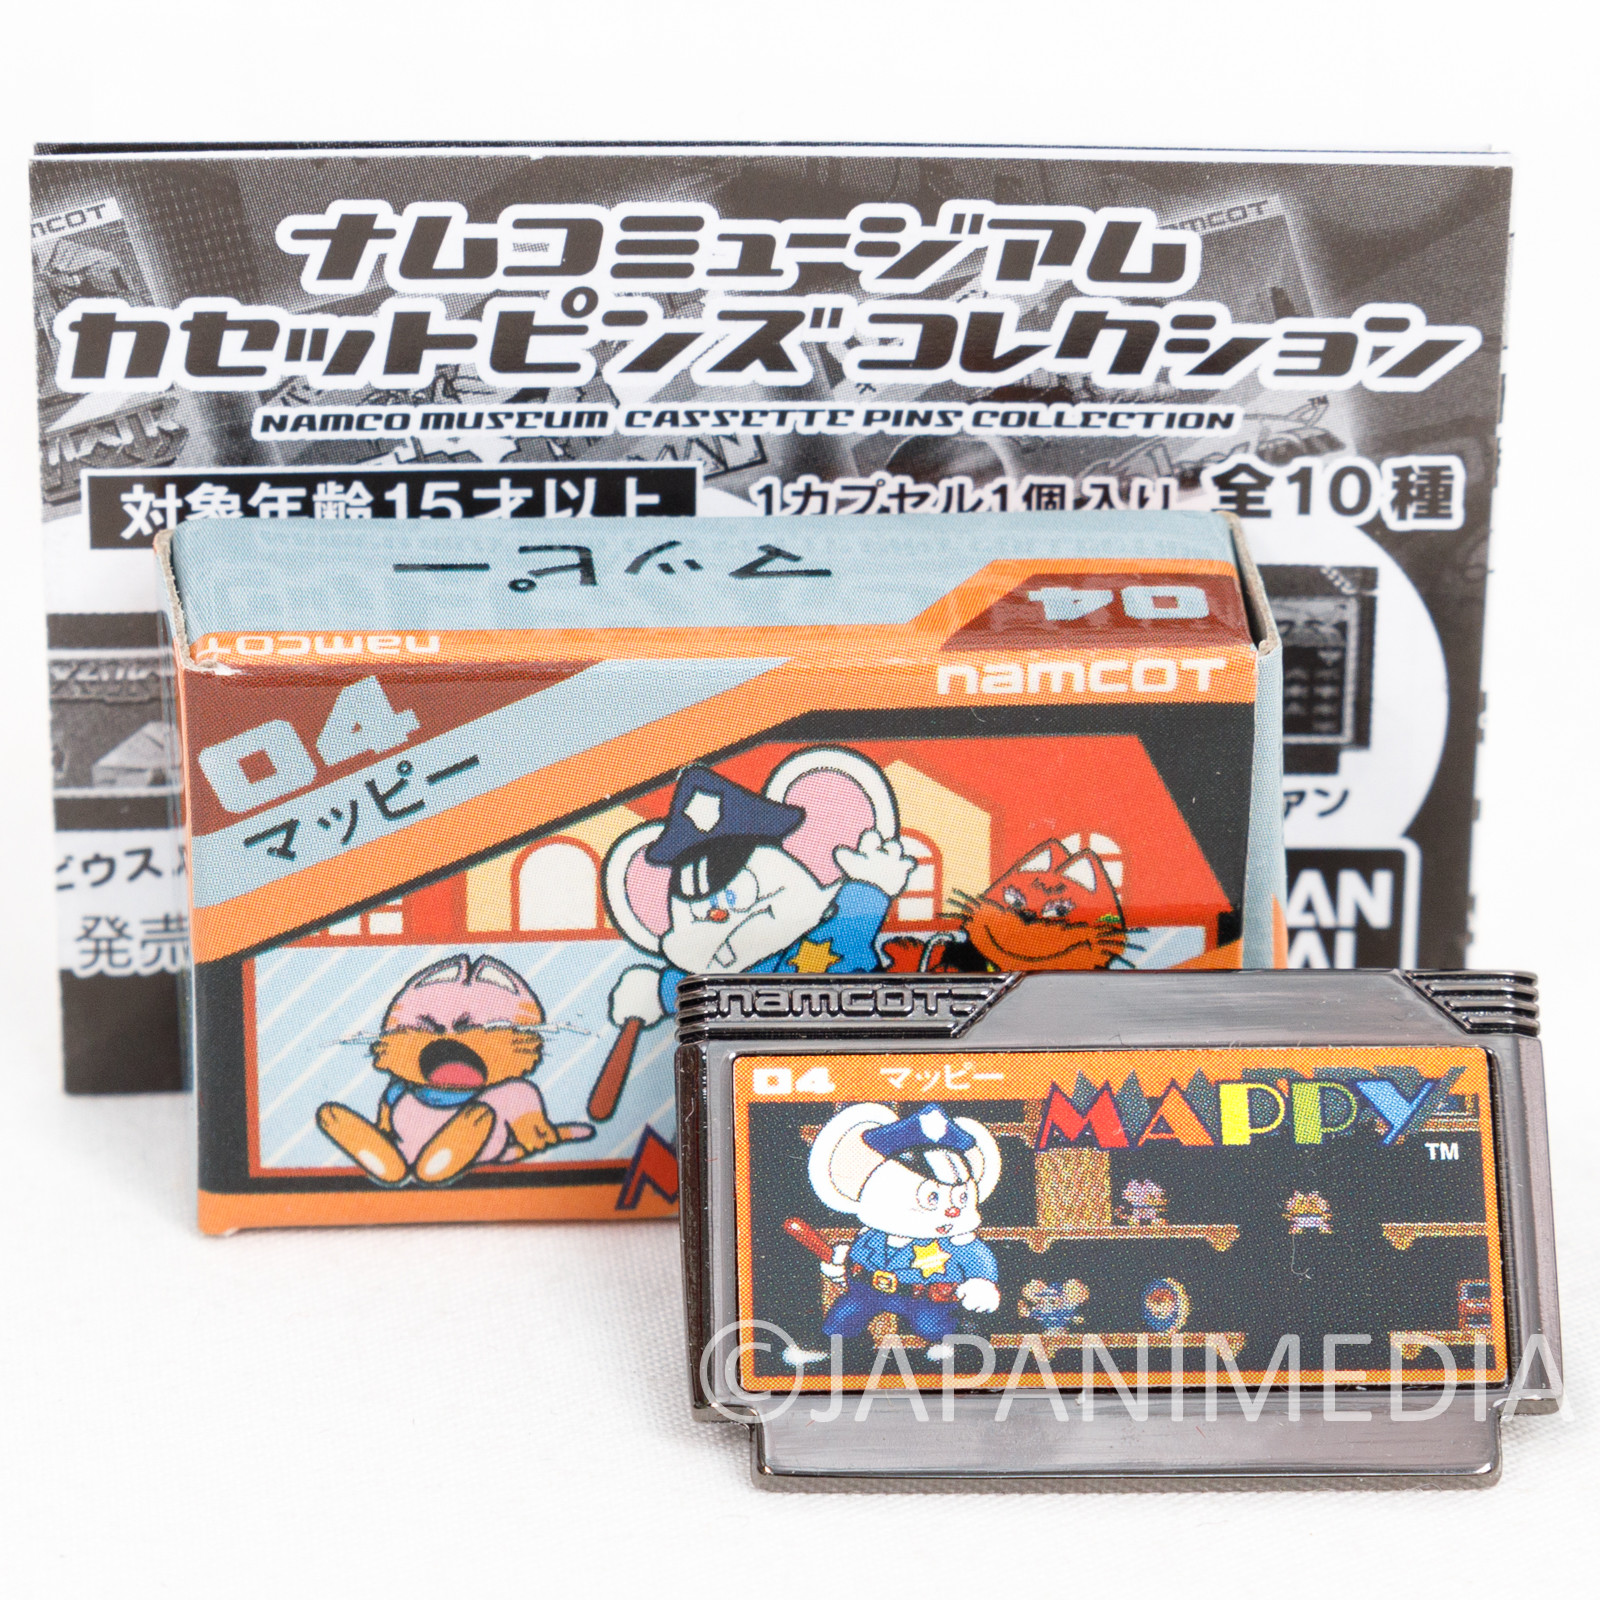 Mappy Namco Museum Cassette Pins Collection BANDAI JAPAN FAMICOM NEC